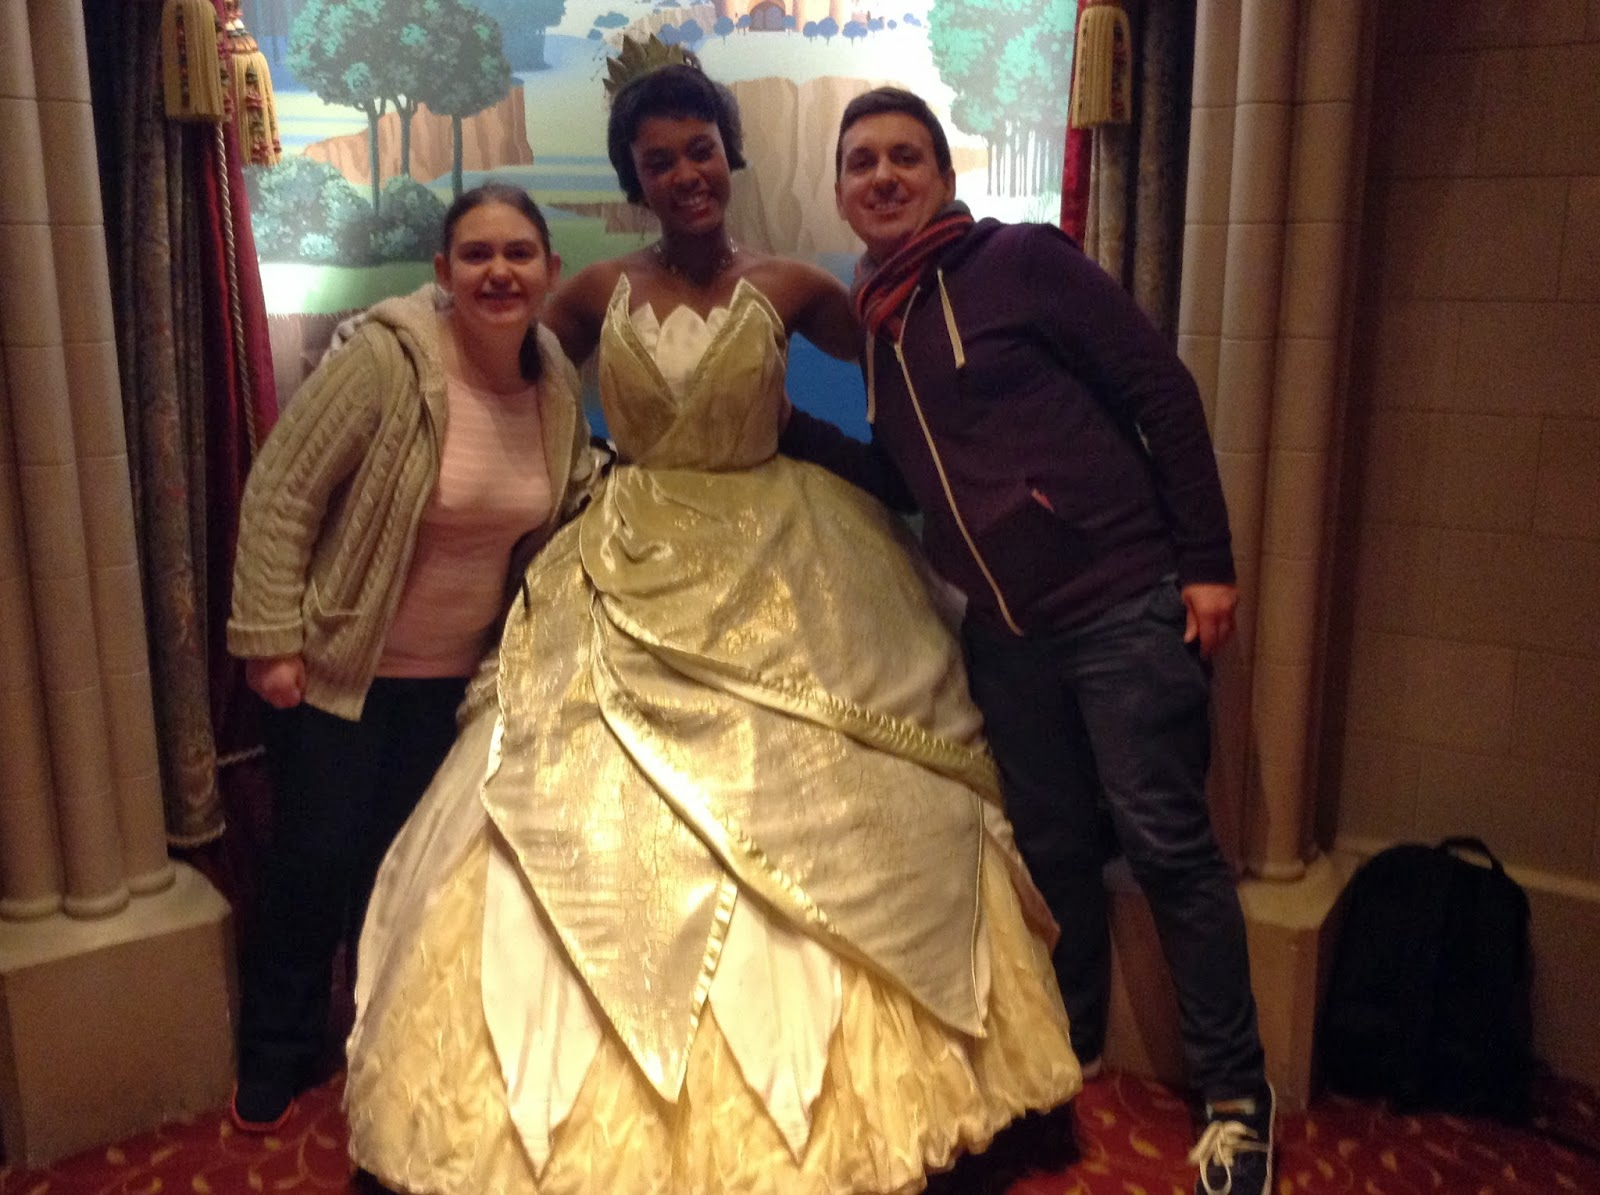 Our take on life magic of disney tiana from princess and the frog was the princess of the moment we were both amazed how well she kept in character for the duration of our visit with her m4hsunfo